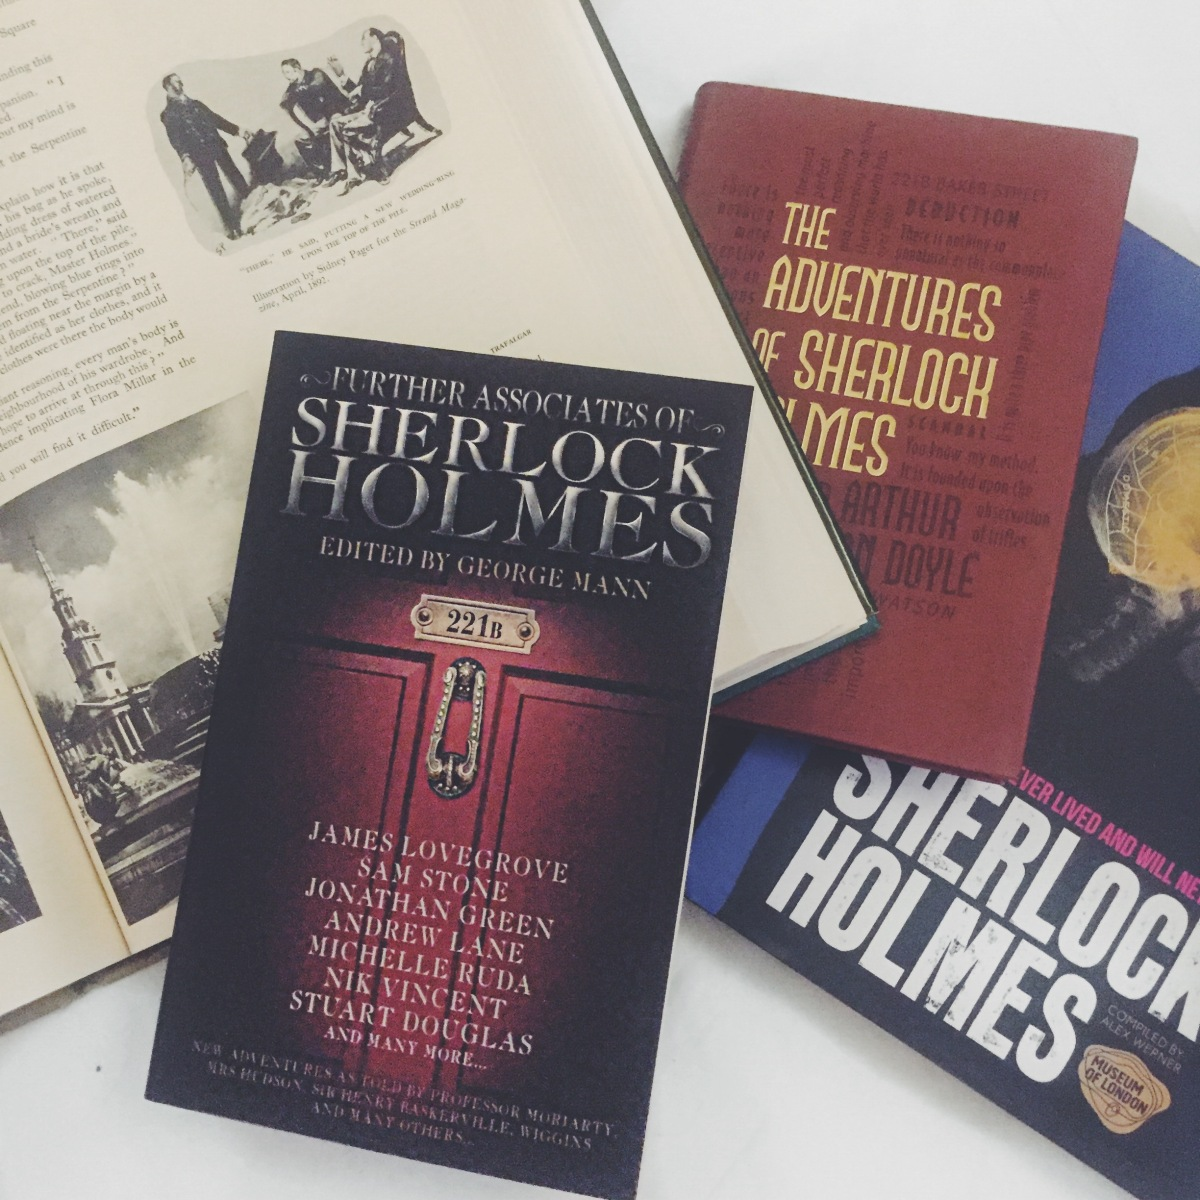 REVIEW: Further Associates of Sherlock Holmes edited by